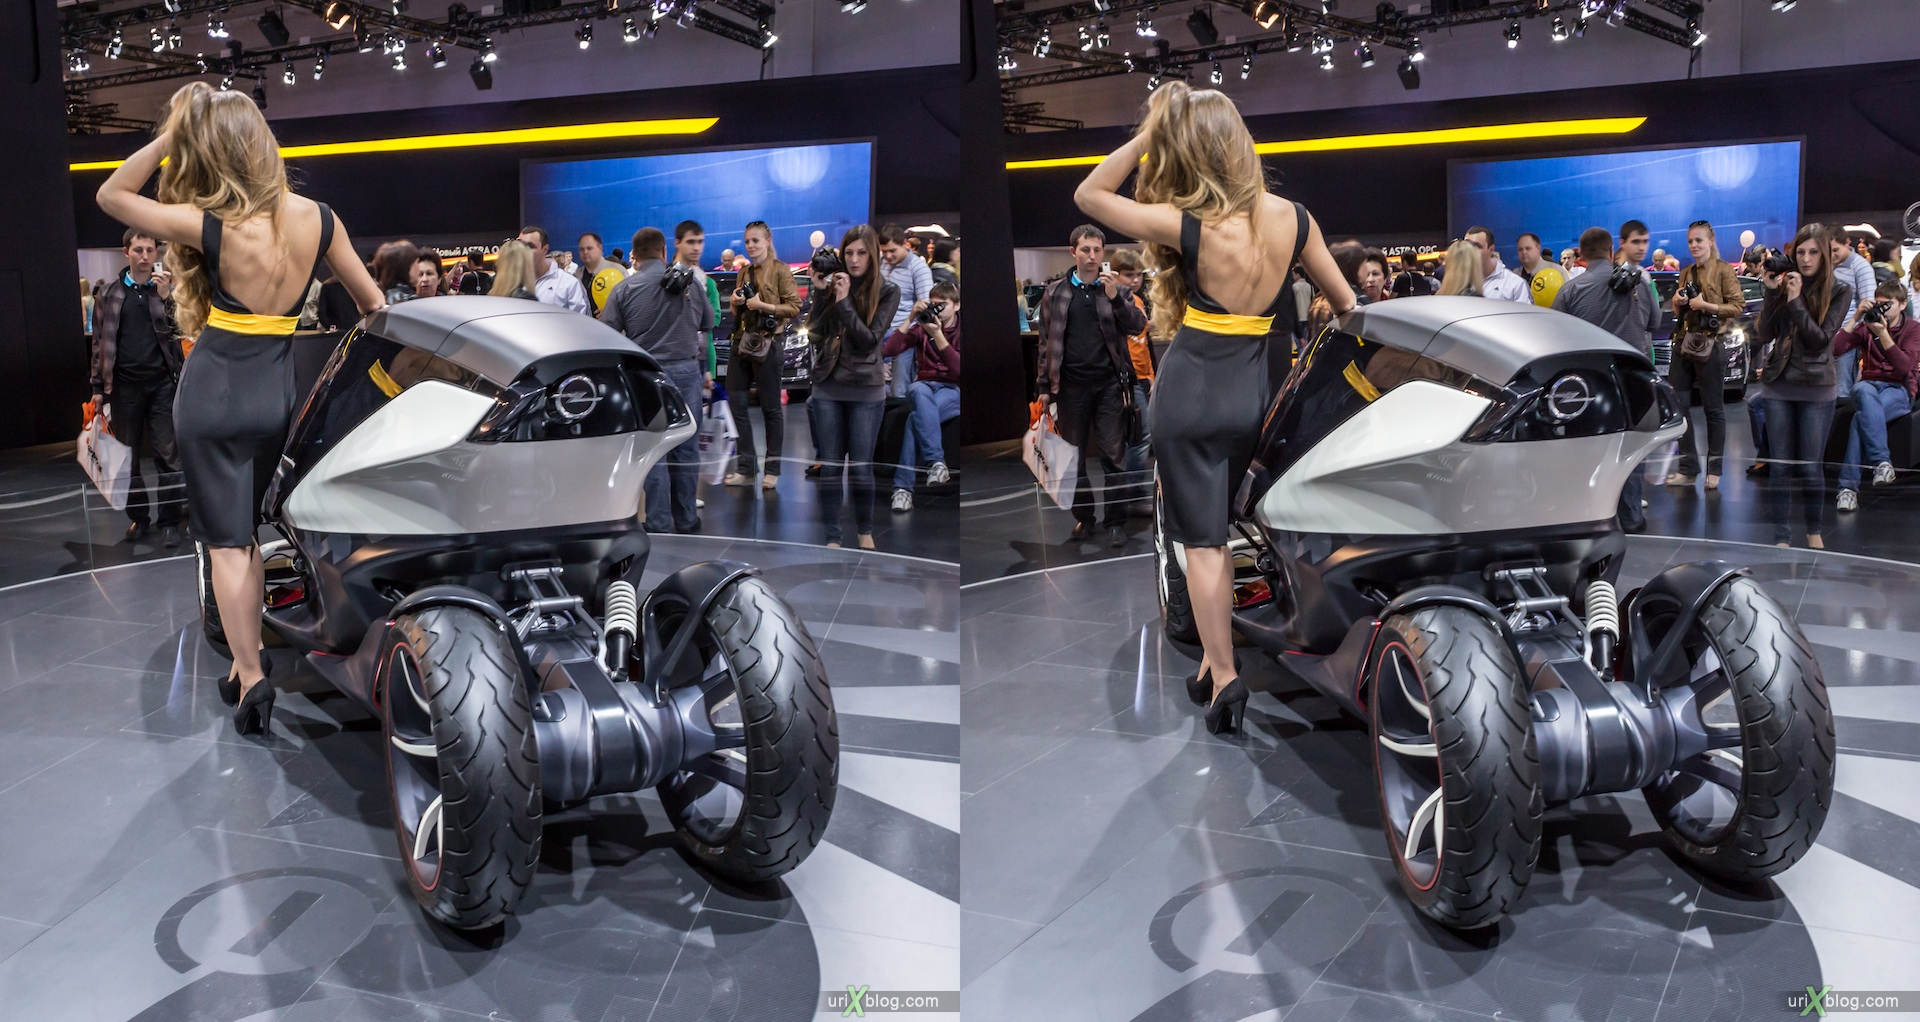 2012, Opel, Wir Leben Autos, girl, model, Moscow International Automobile Salon, auto show, 3D, stereo pair, cross-eyed, crossview